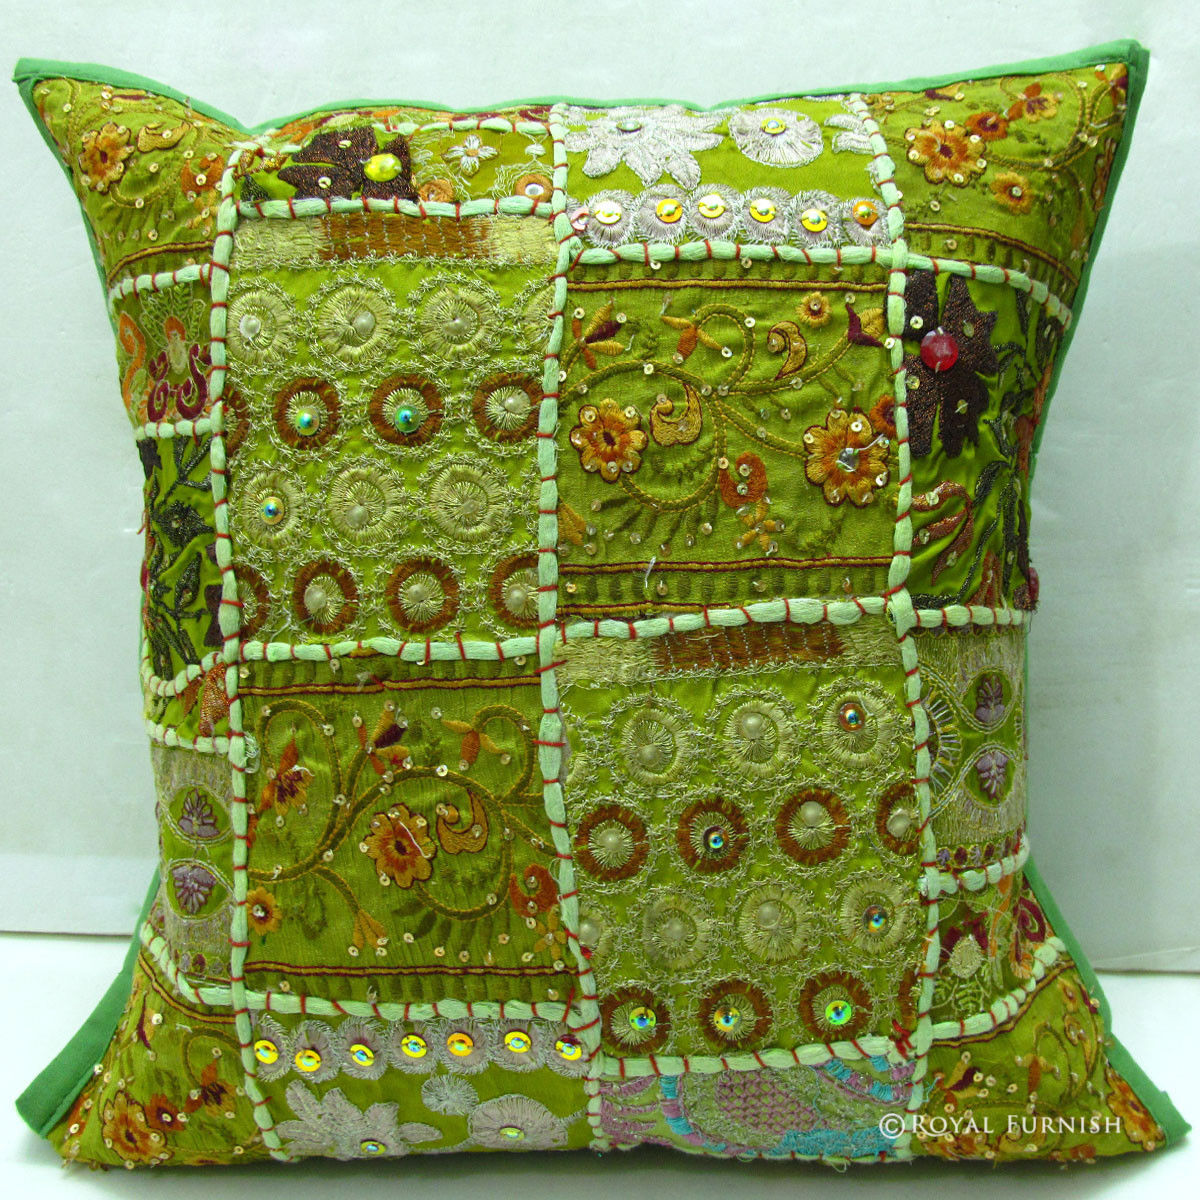 Yellow Embroidered Throw Pillows : Yellow Indian Decorative Patchwork Embroidery Throw Pillow - RoyalFurnish.com